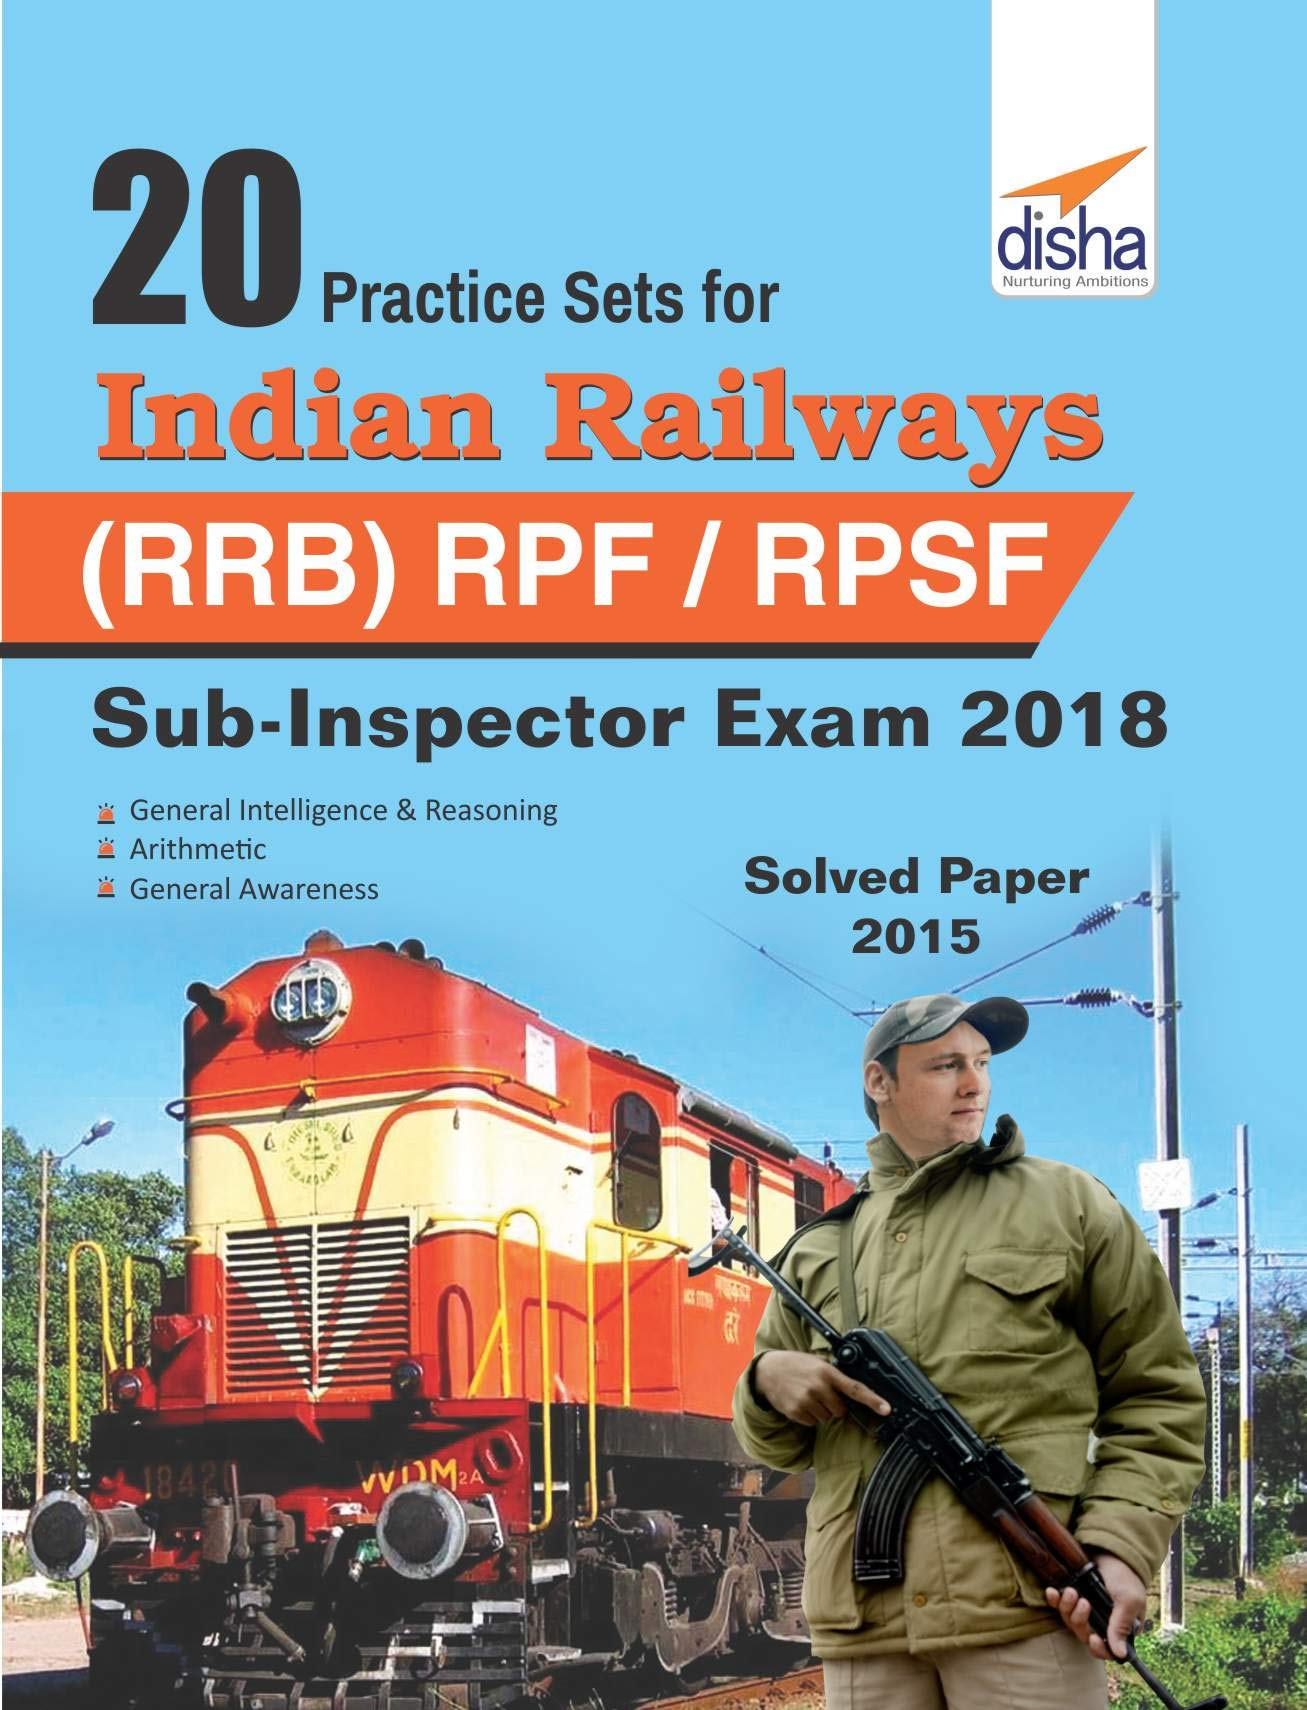 Best Price – 20 Practice Sets for RRB Sub-Inspector by Disha Publication